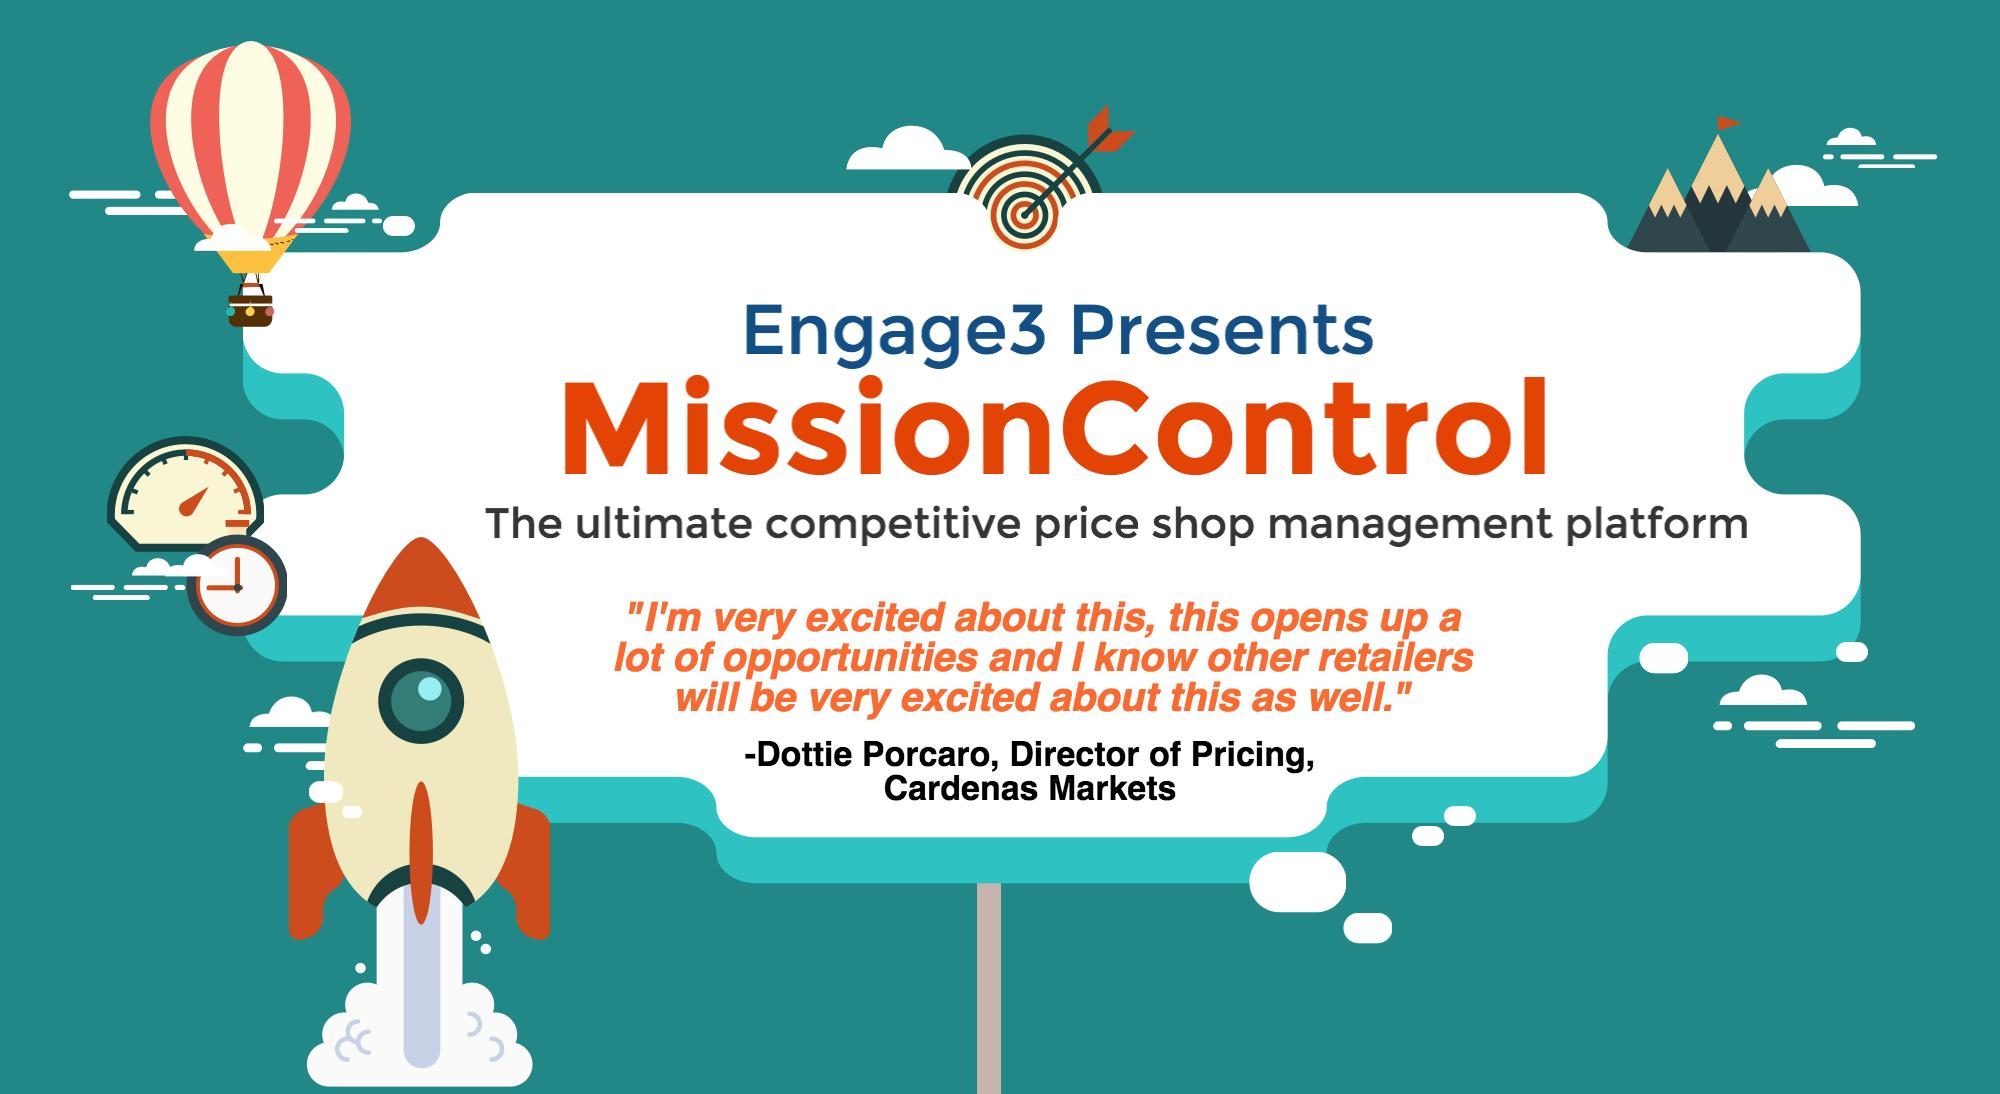 Technology Management Image: Engage3 Launches MissionControl